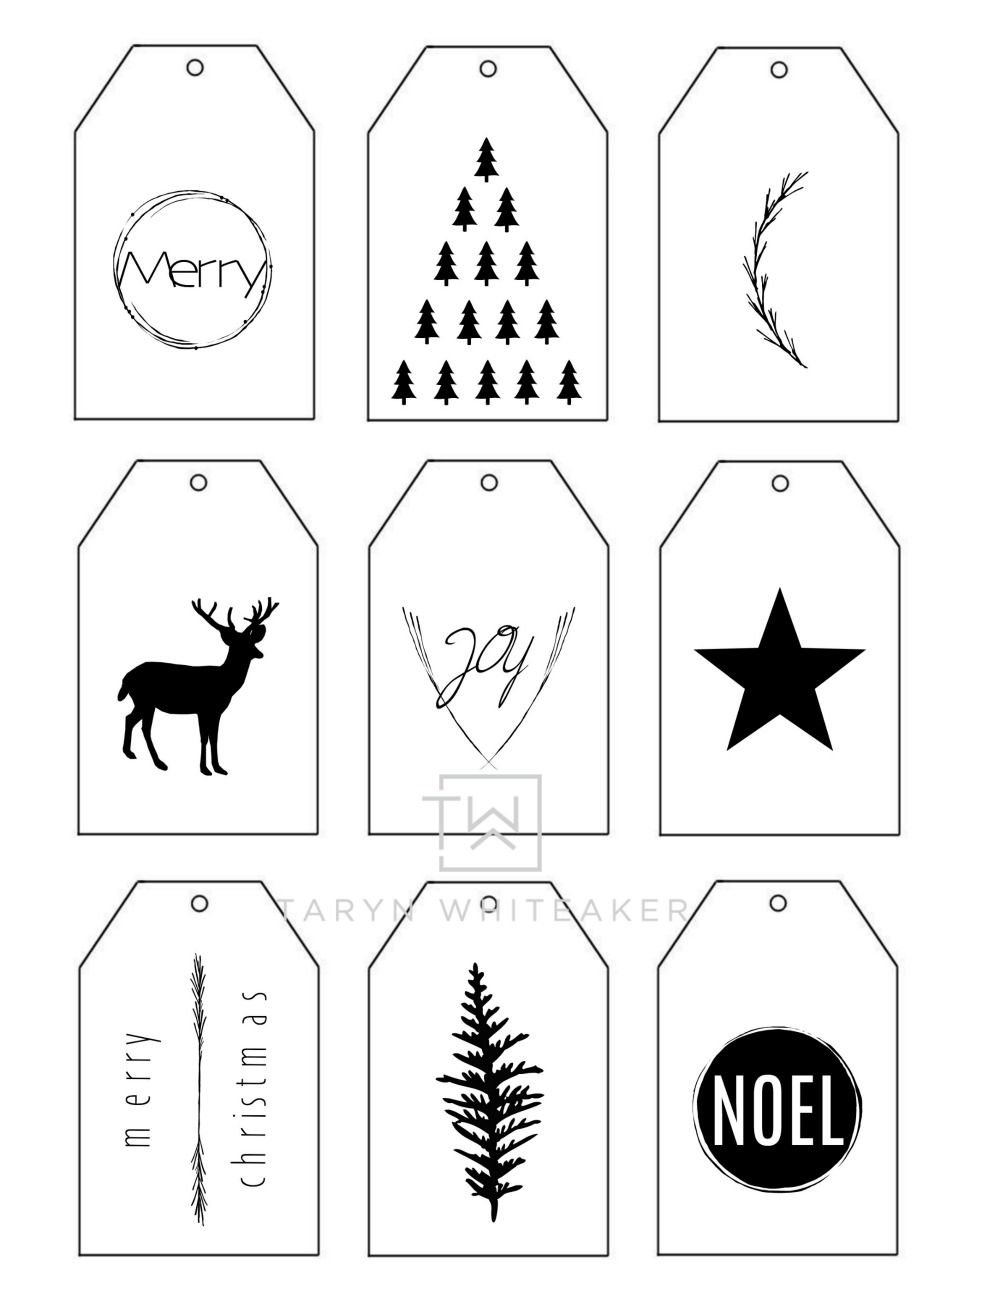 photograph relating to Printable Christmas Tags Black and White known as Printable Xmas Present Tags - Taryn Whiteaker